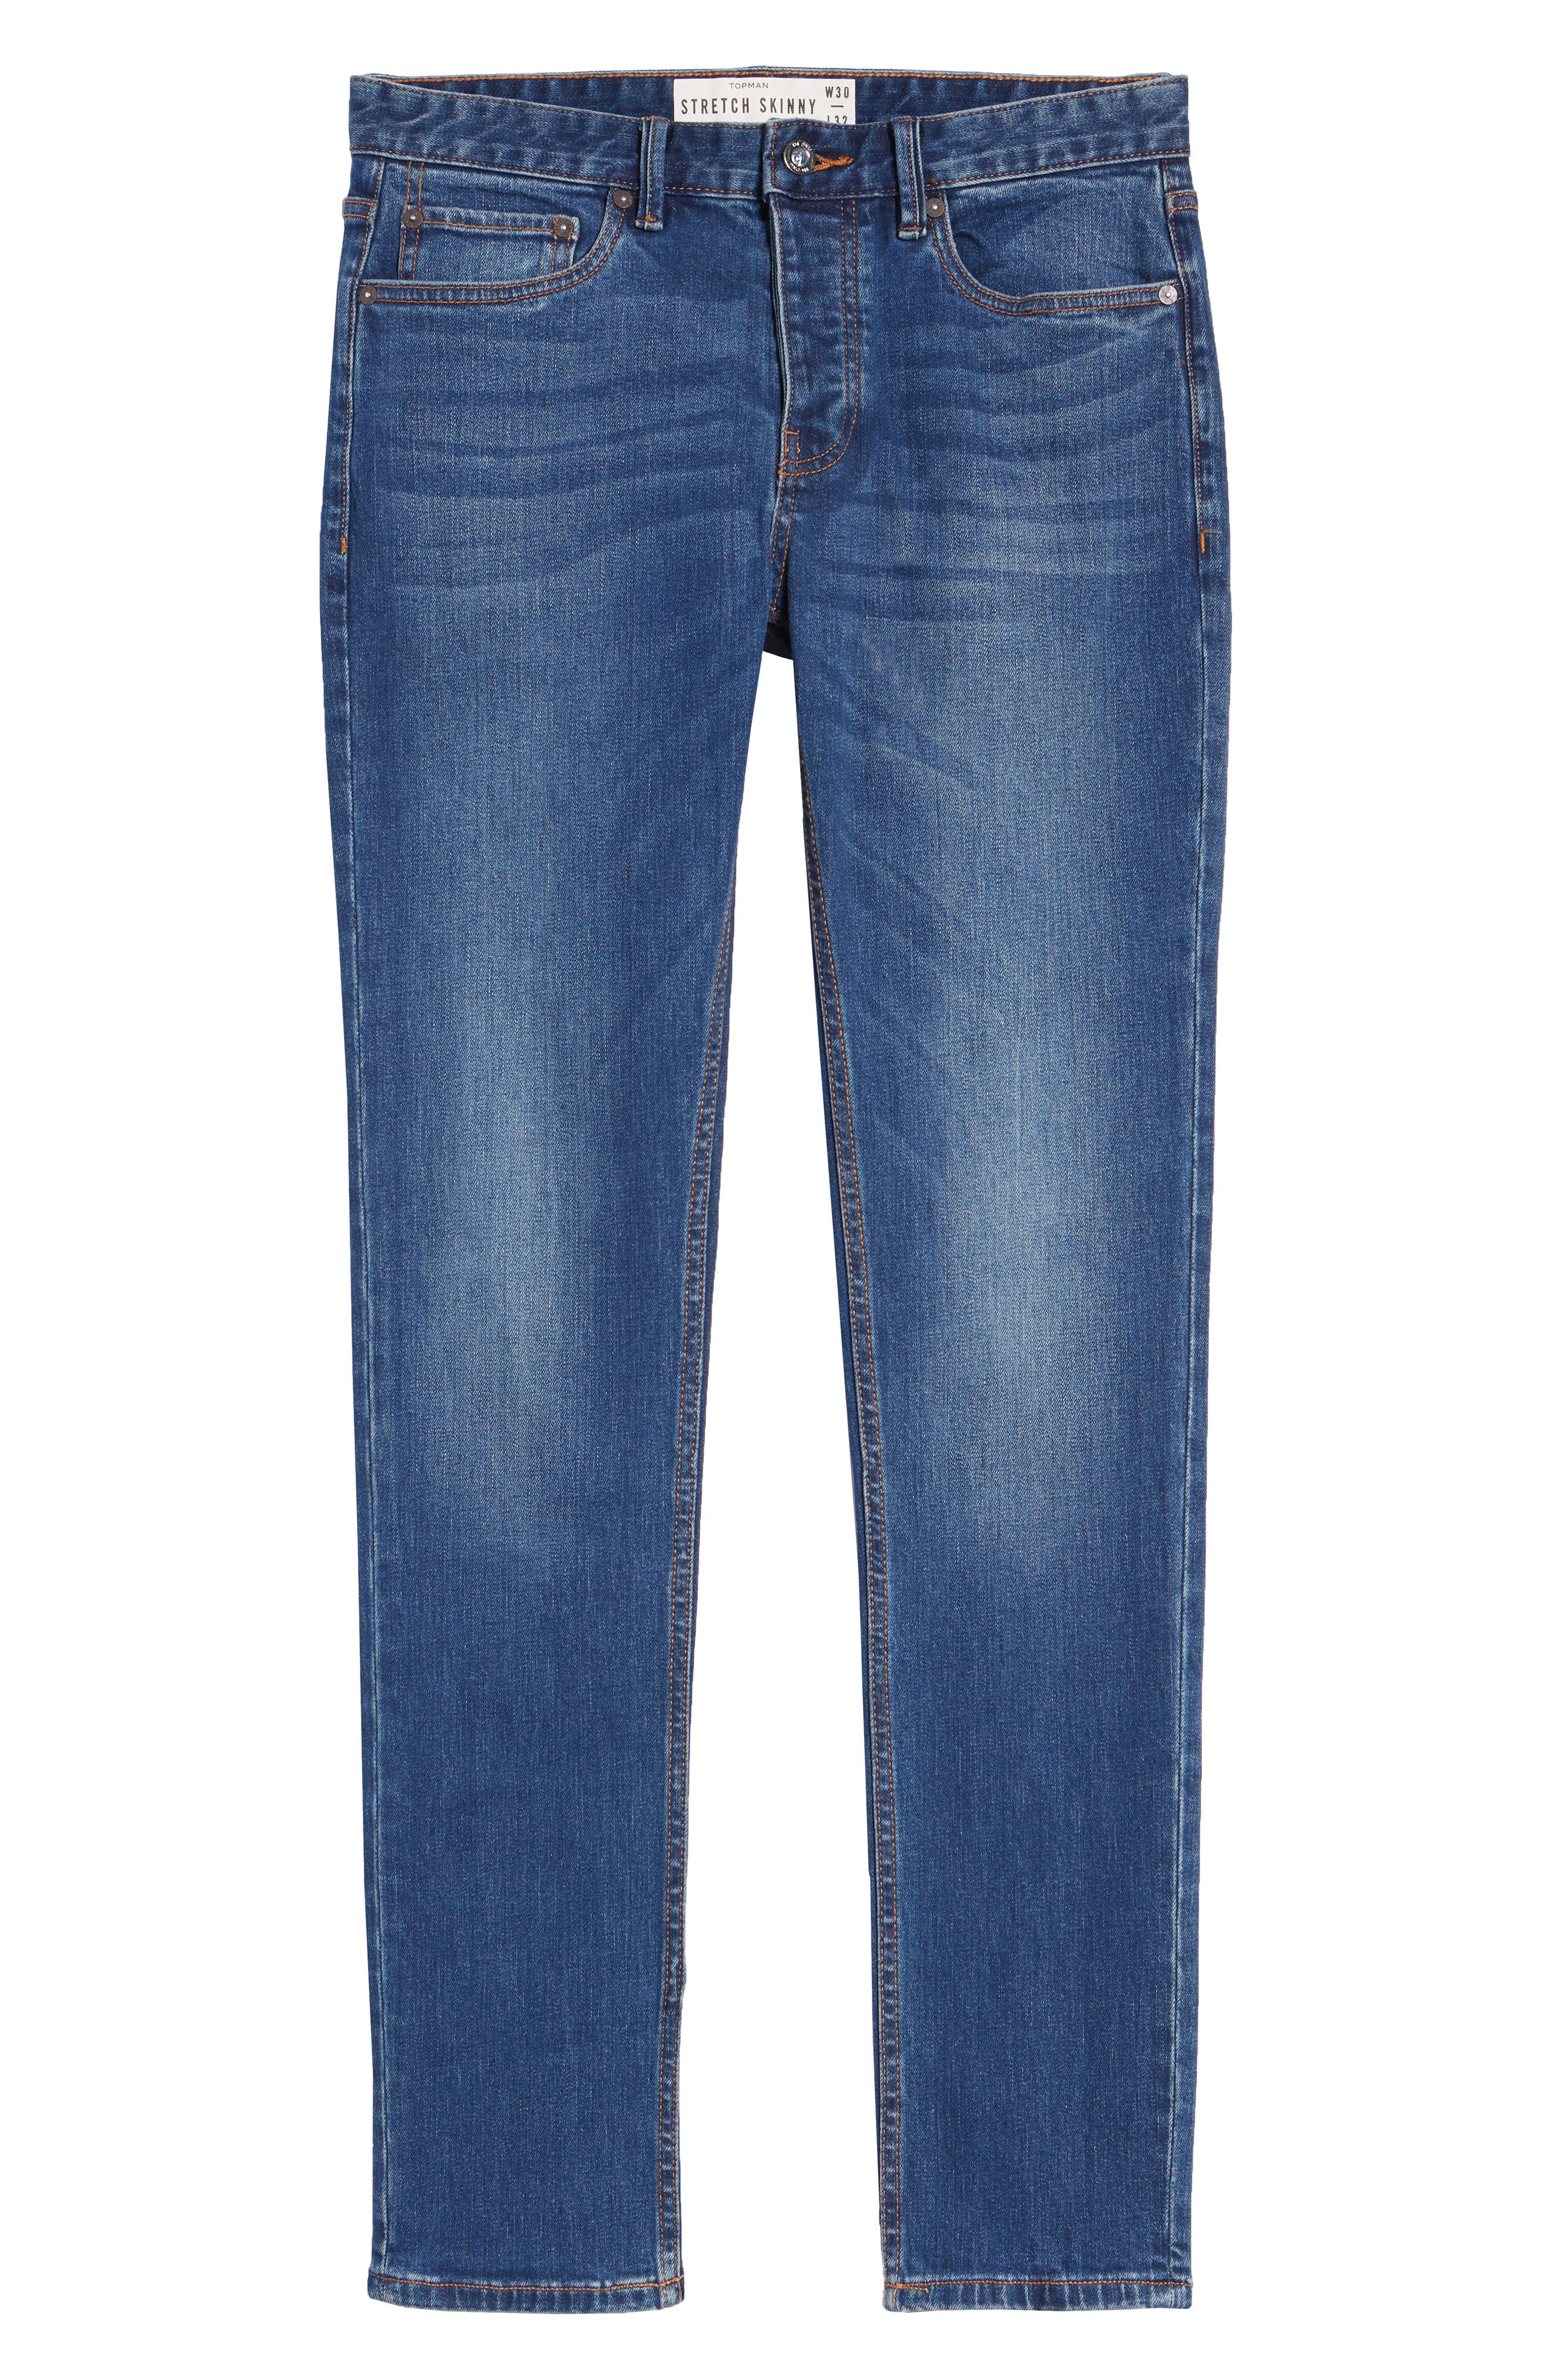 Stretch Skinny Fit Jeans,                             Alternate thumbnail 3, color,                             BLUE